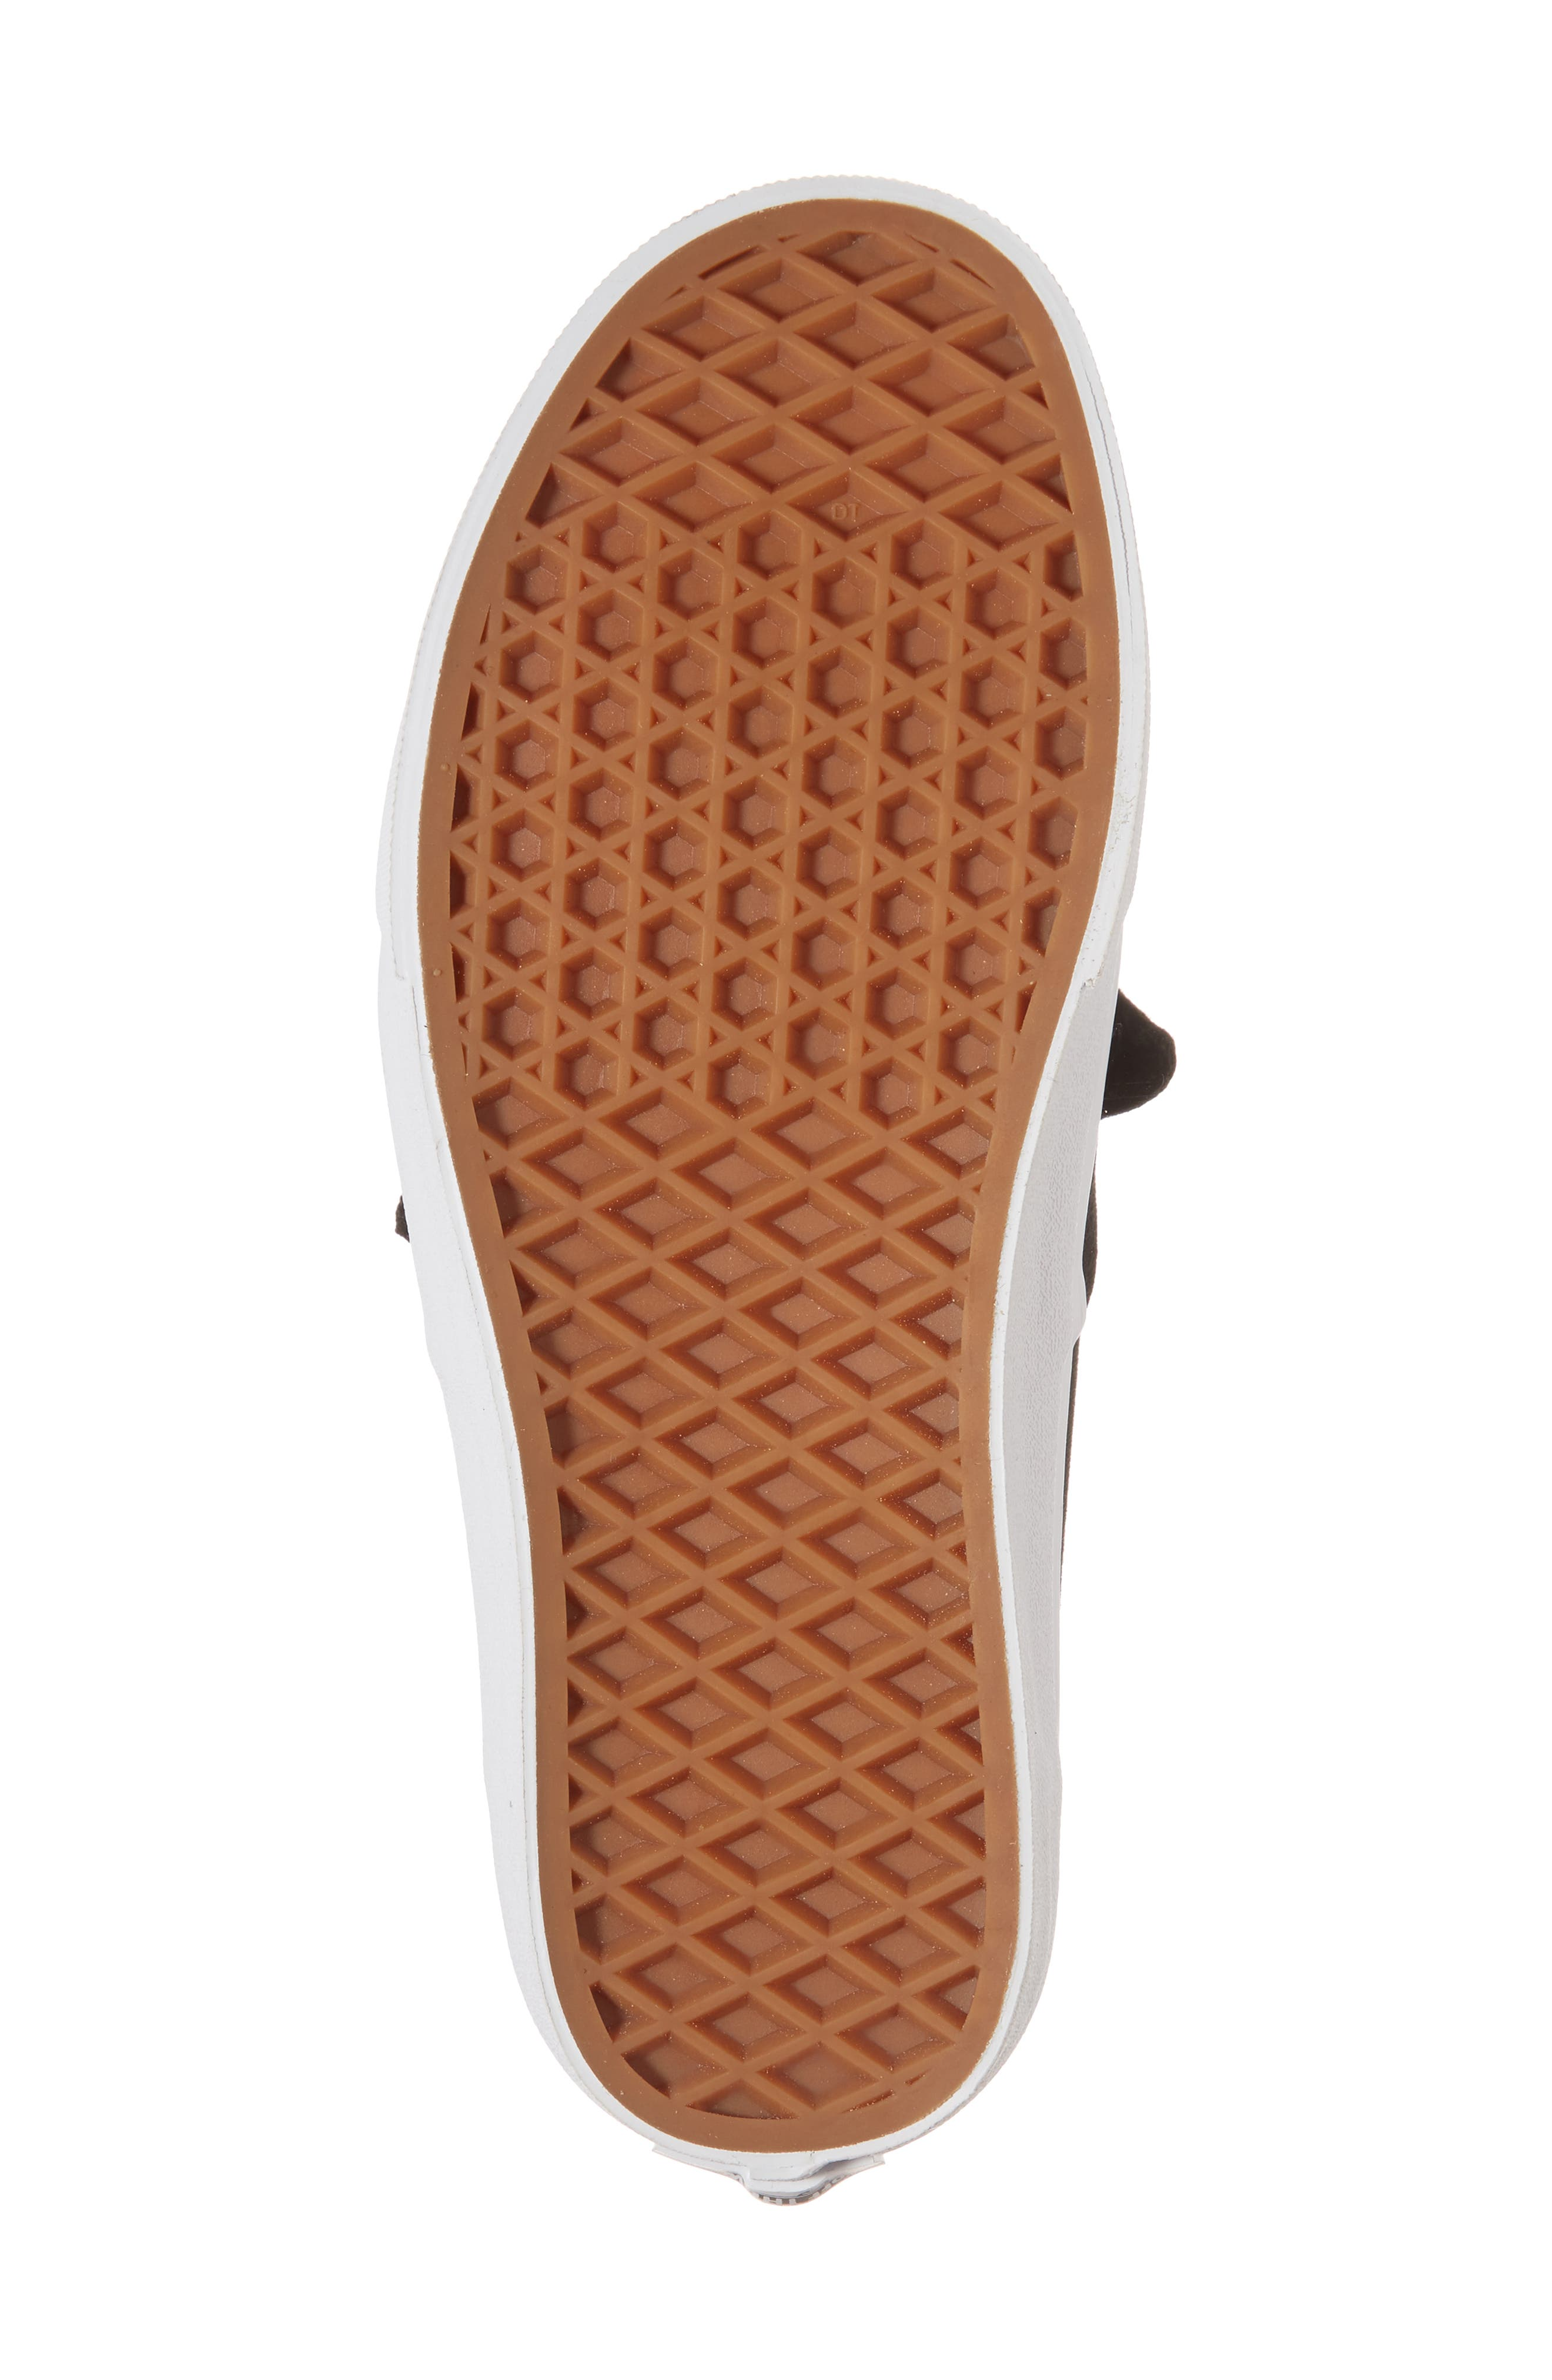 UA Authentic Knotted Slip-On Sneaker,                             Alternate thumbnail 6, color,                             001